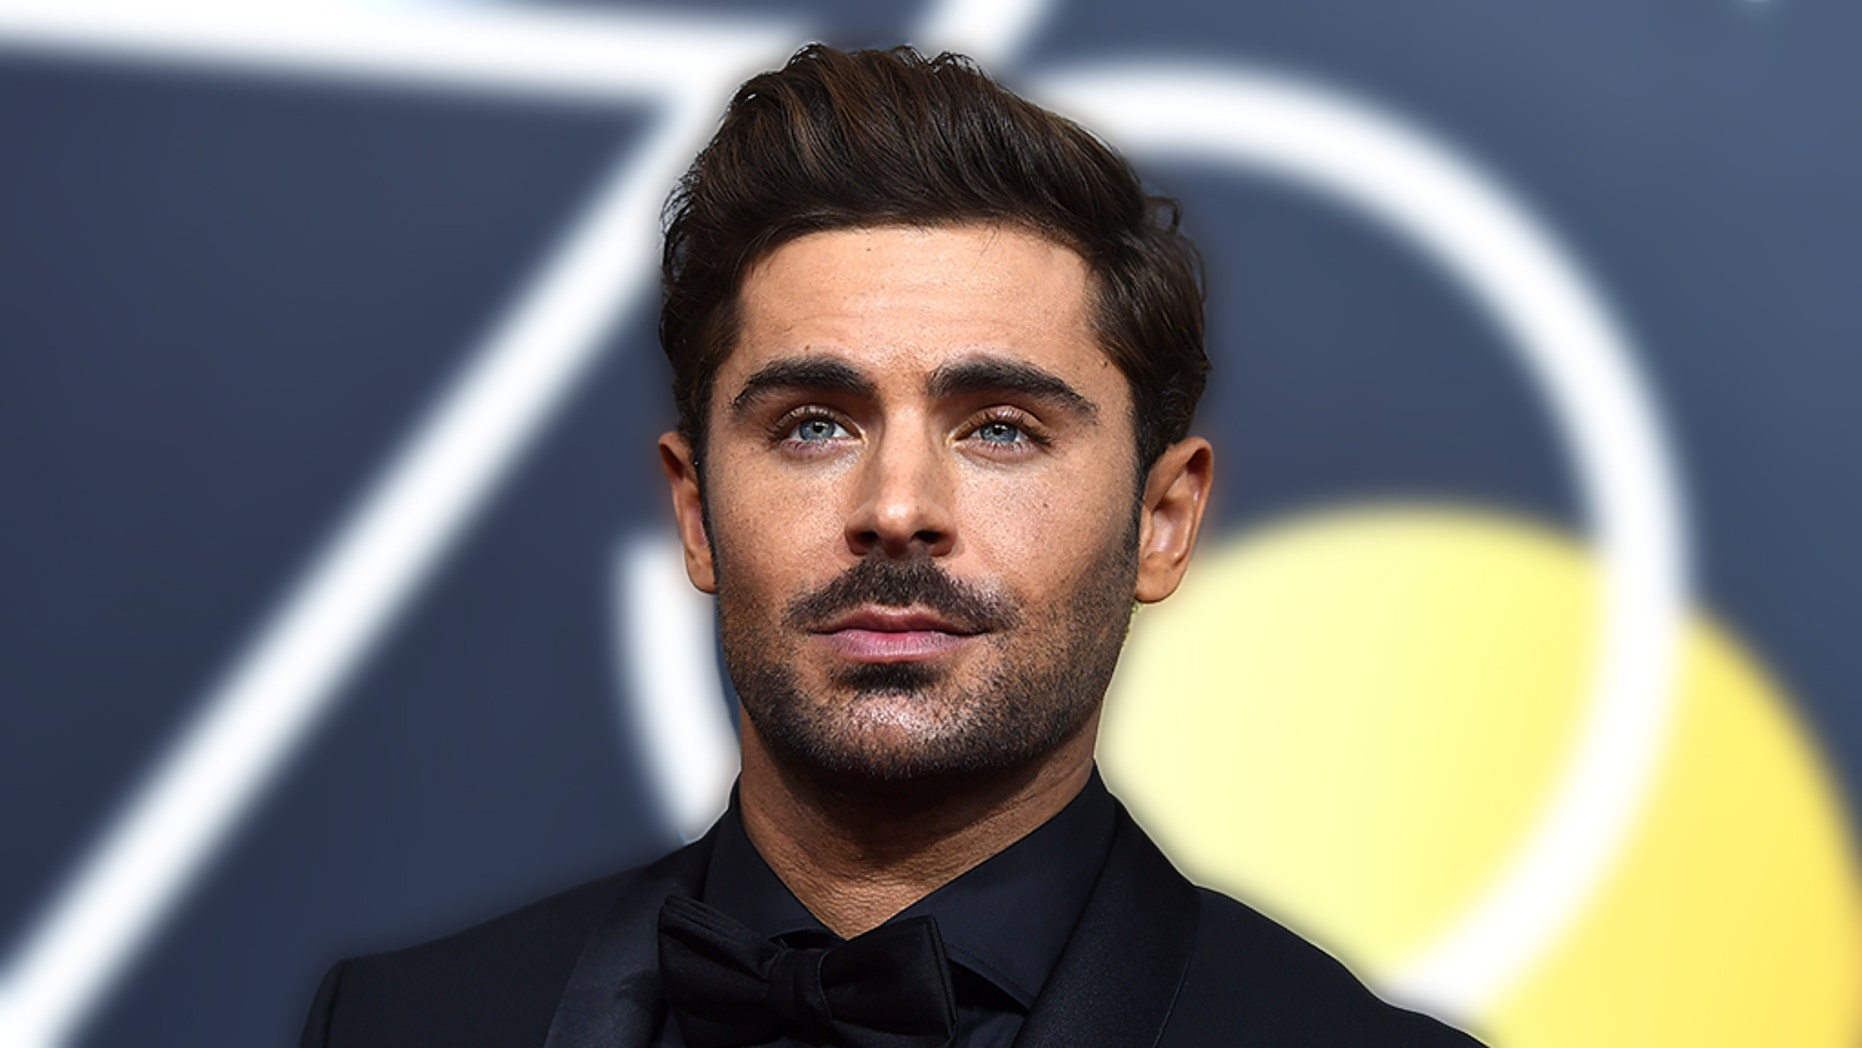 Zac Efron at the 2018 Golden Globe Awards at the Beverly Hilton Hotel, in Beverly Hills, Calif.